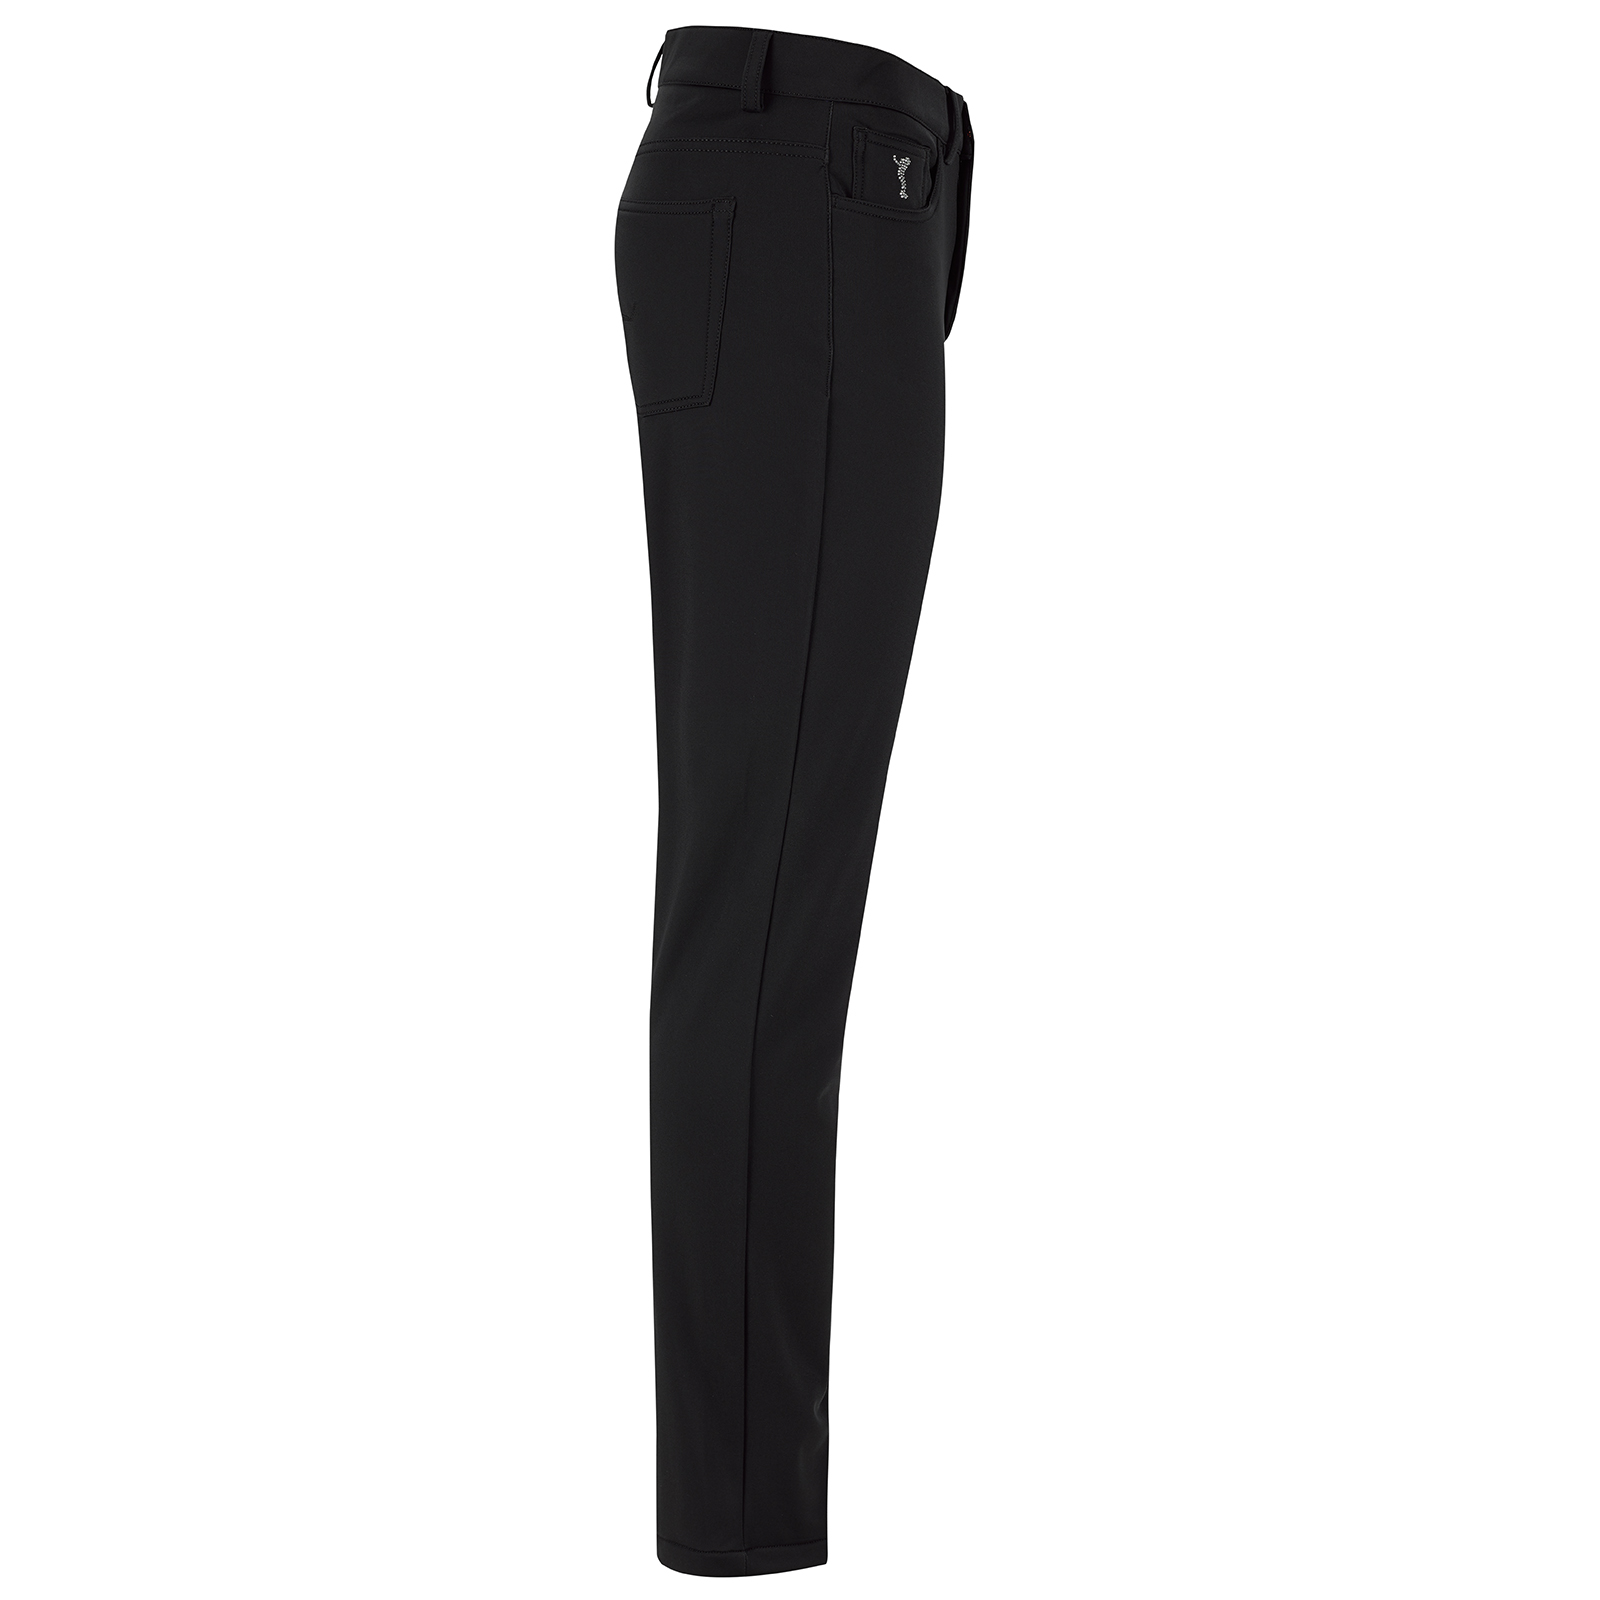 Damen 7/8 Slim-Fit Golfhose aus 4-Way-Stretch